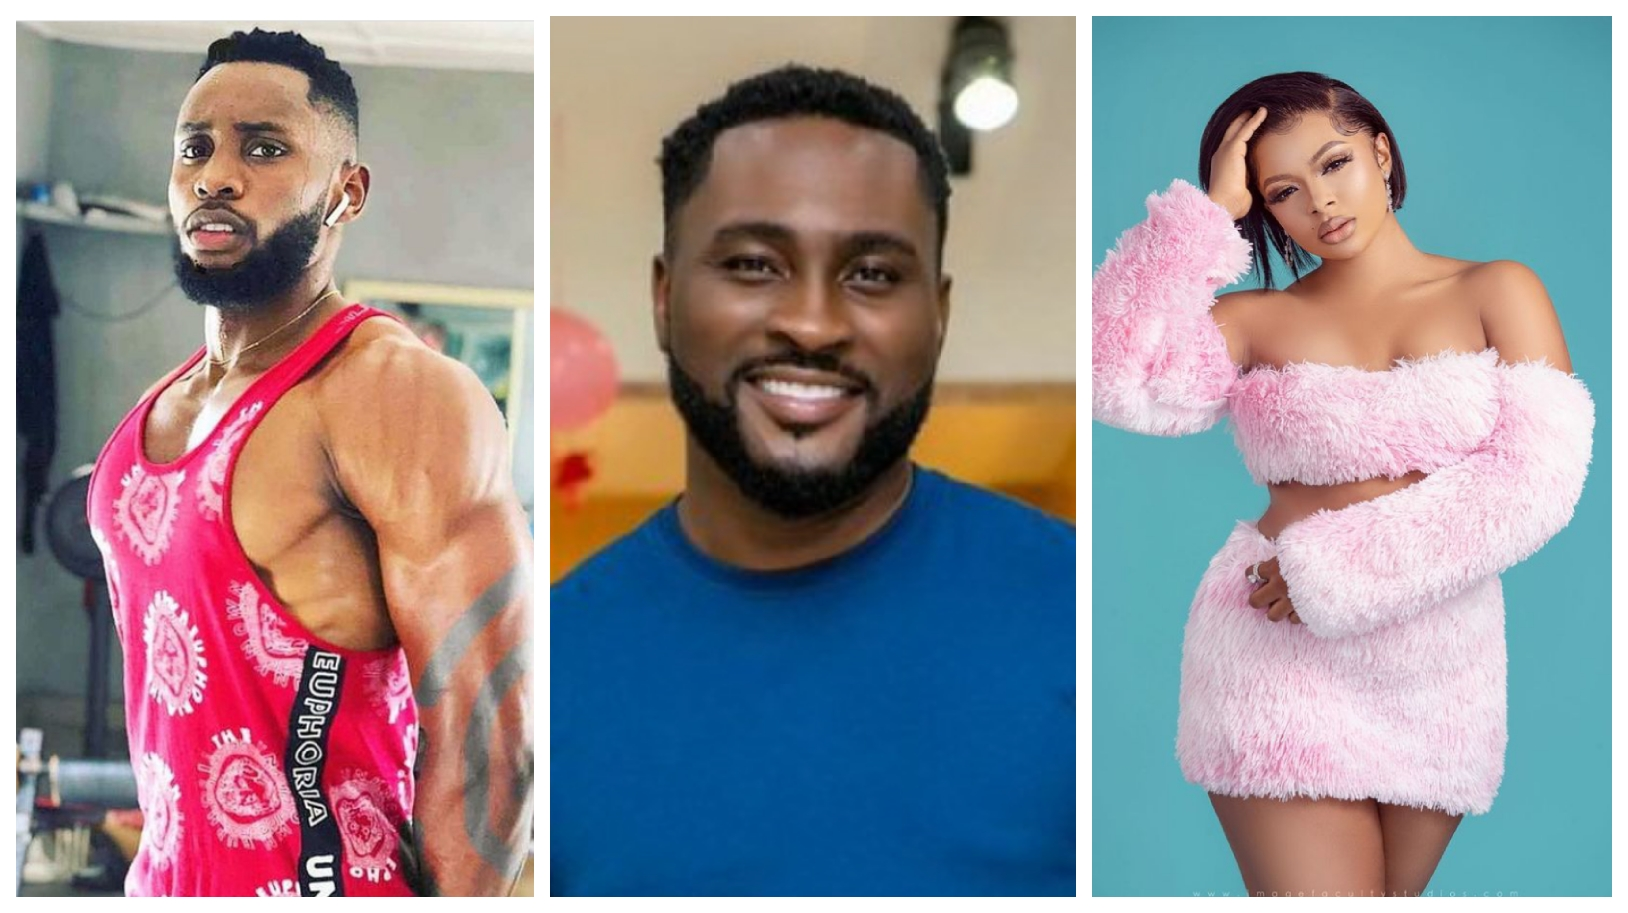 BBNaija: Liquorose, Emmanuel, and Pere emerge the winners of today's airtel task with N1m cash prize